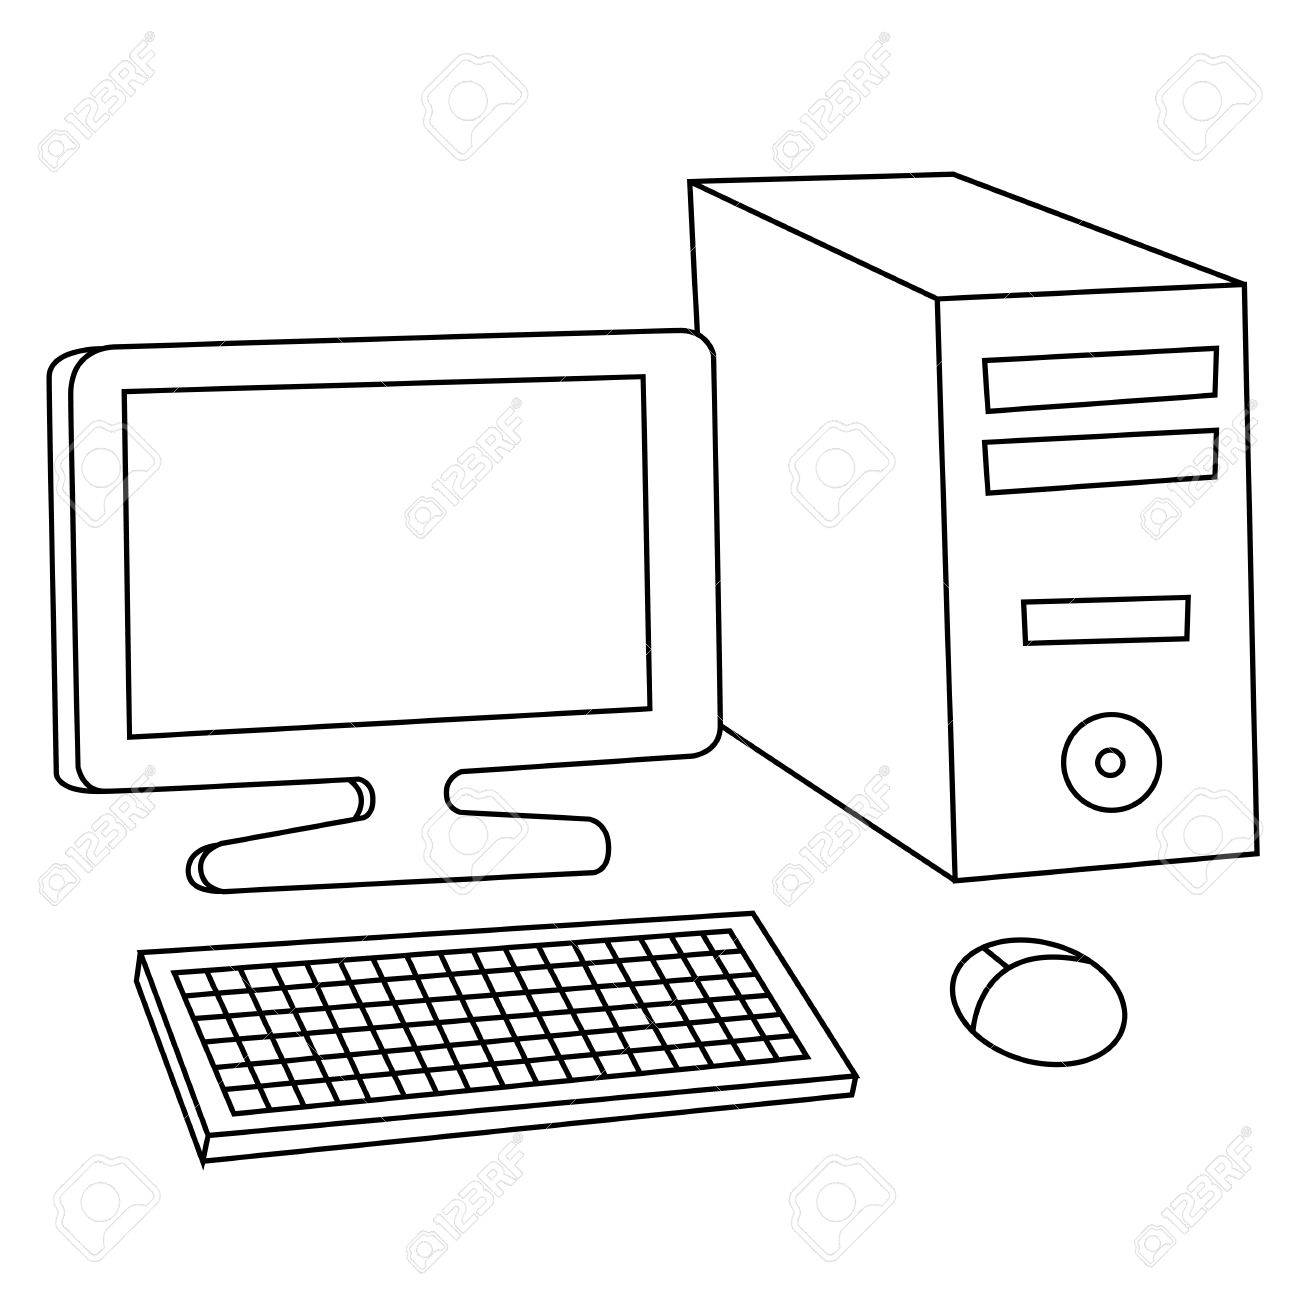 Black outline vector computer on white background..